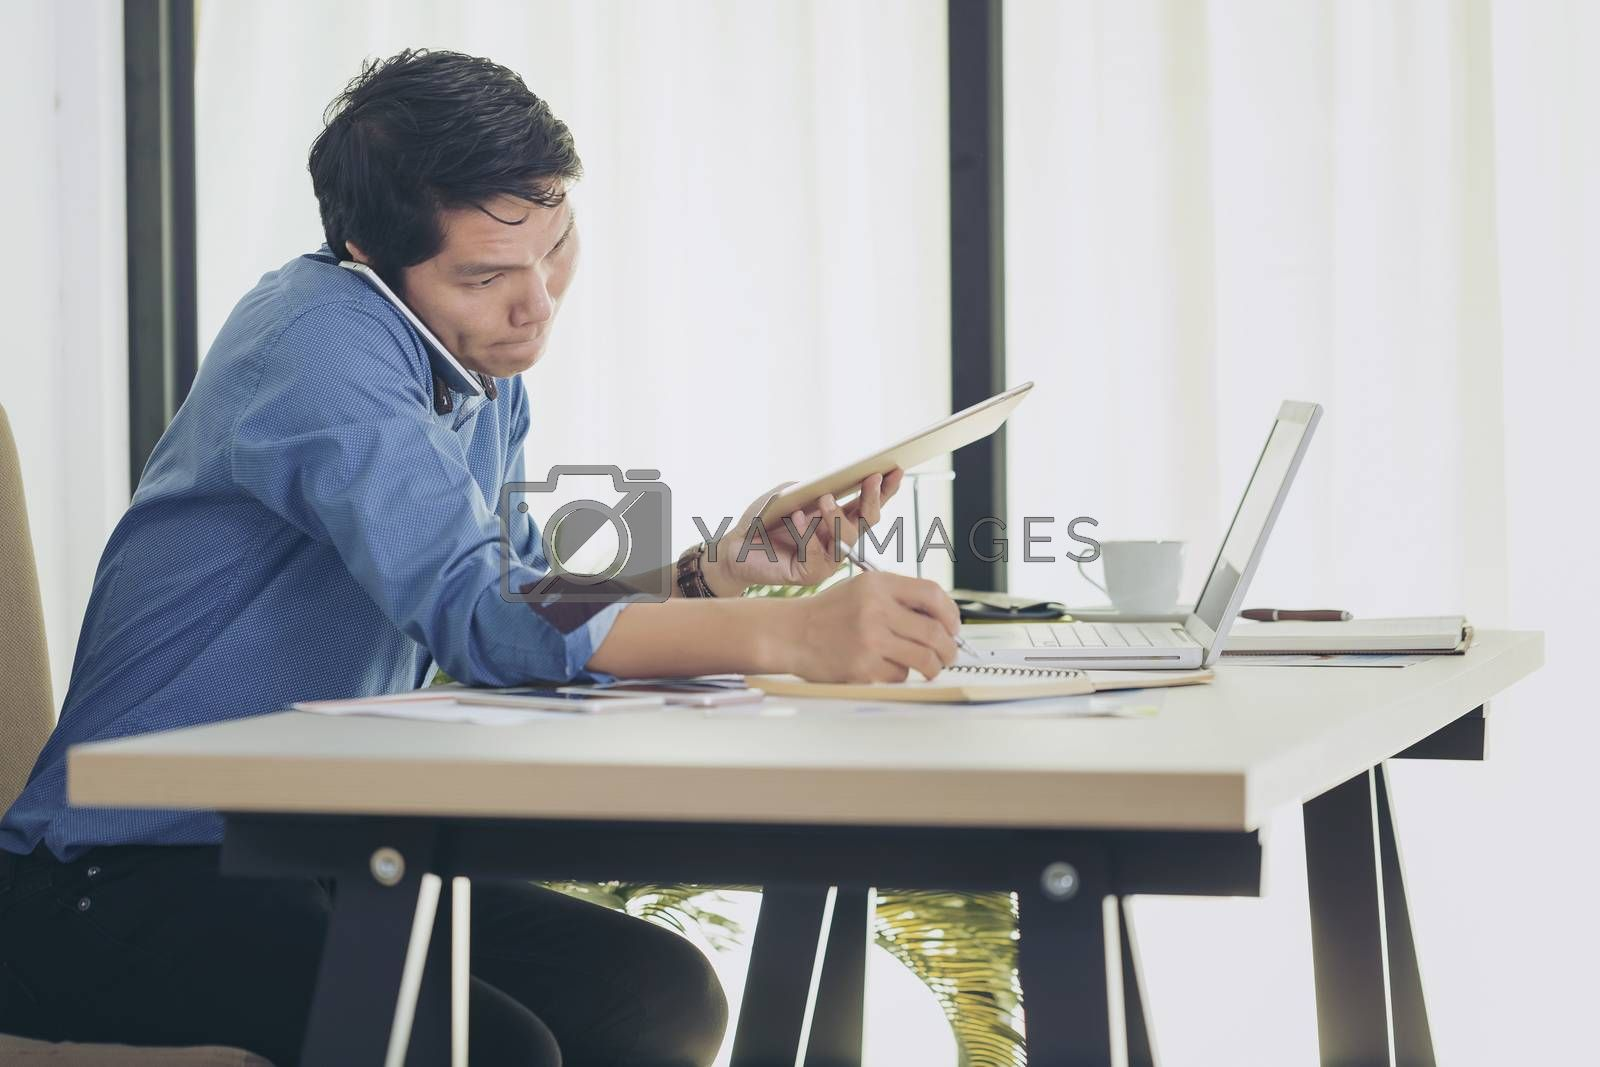 Busy businessman under stress due to excessive work. Serious focused businessman working on laptop computer online and many mobile phones.